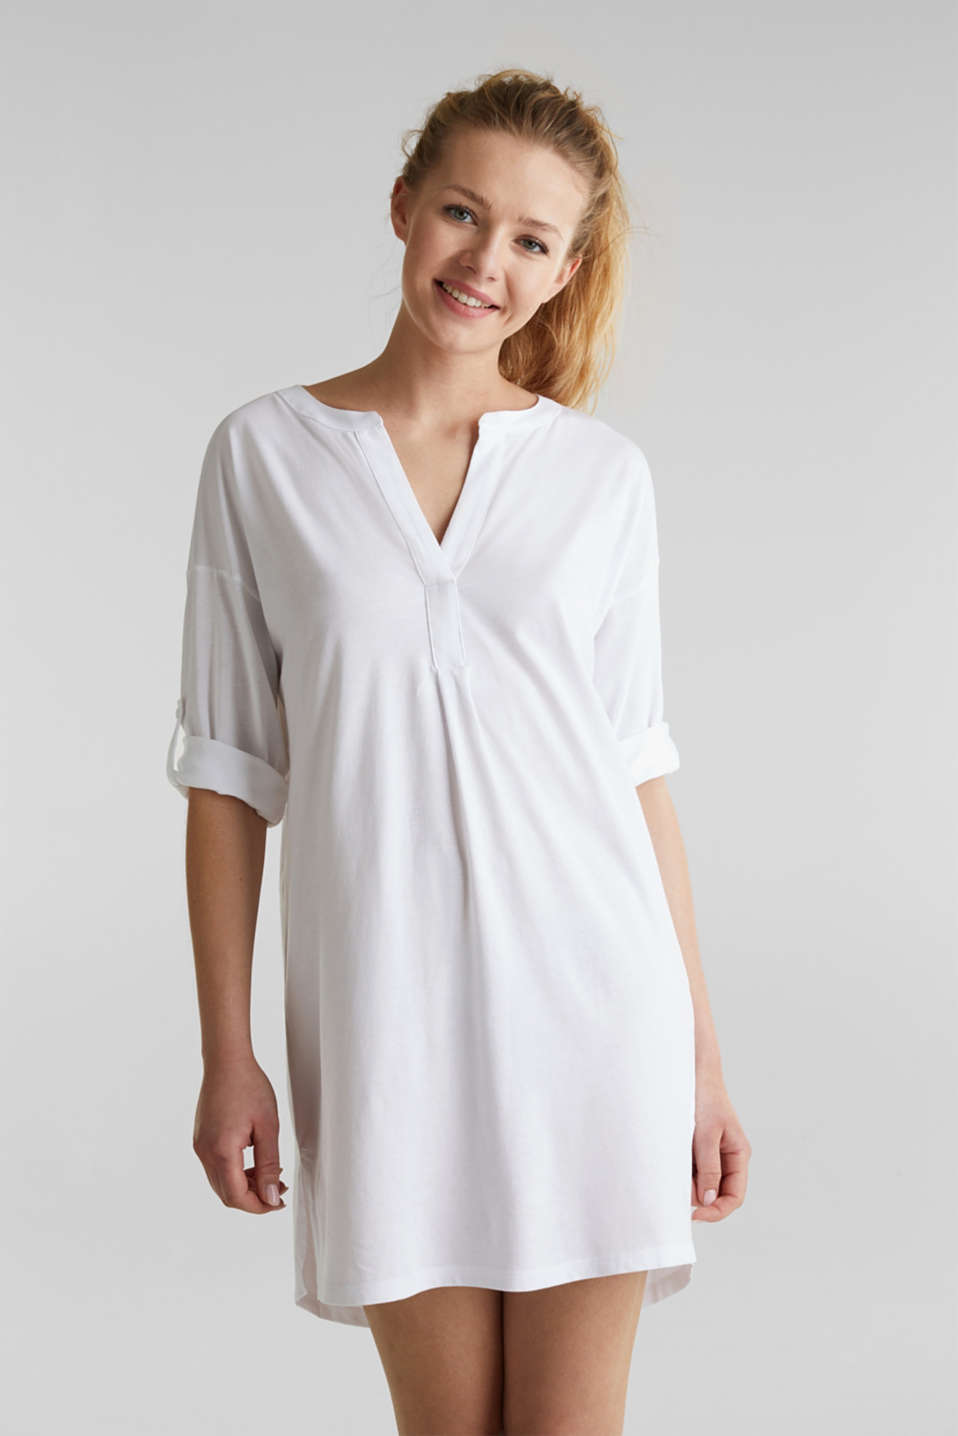 Esprit - Tunic top with turn-up sleeves